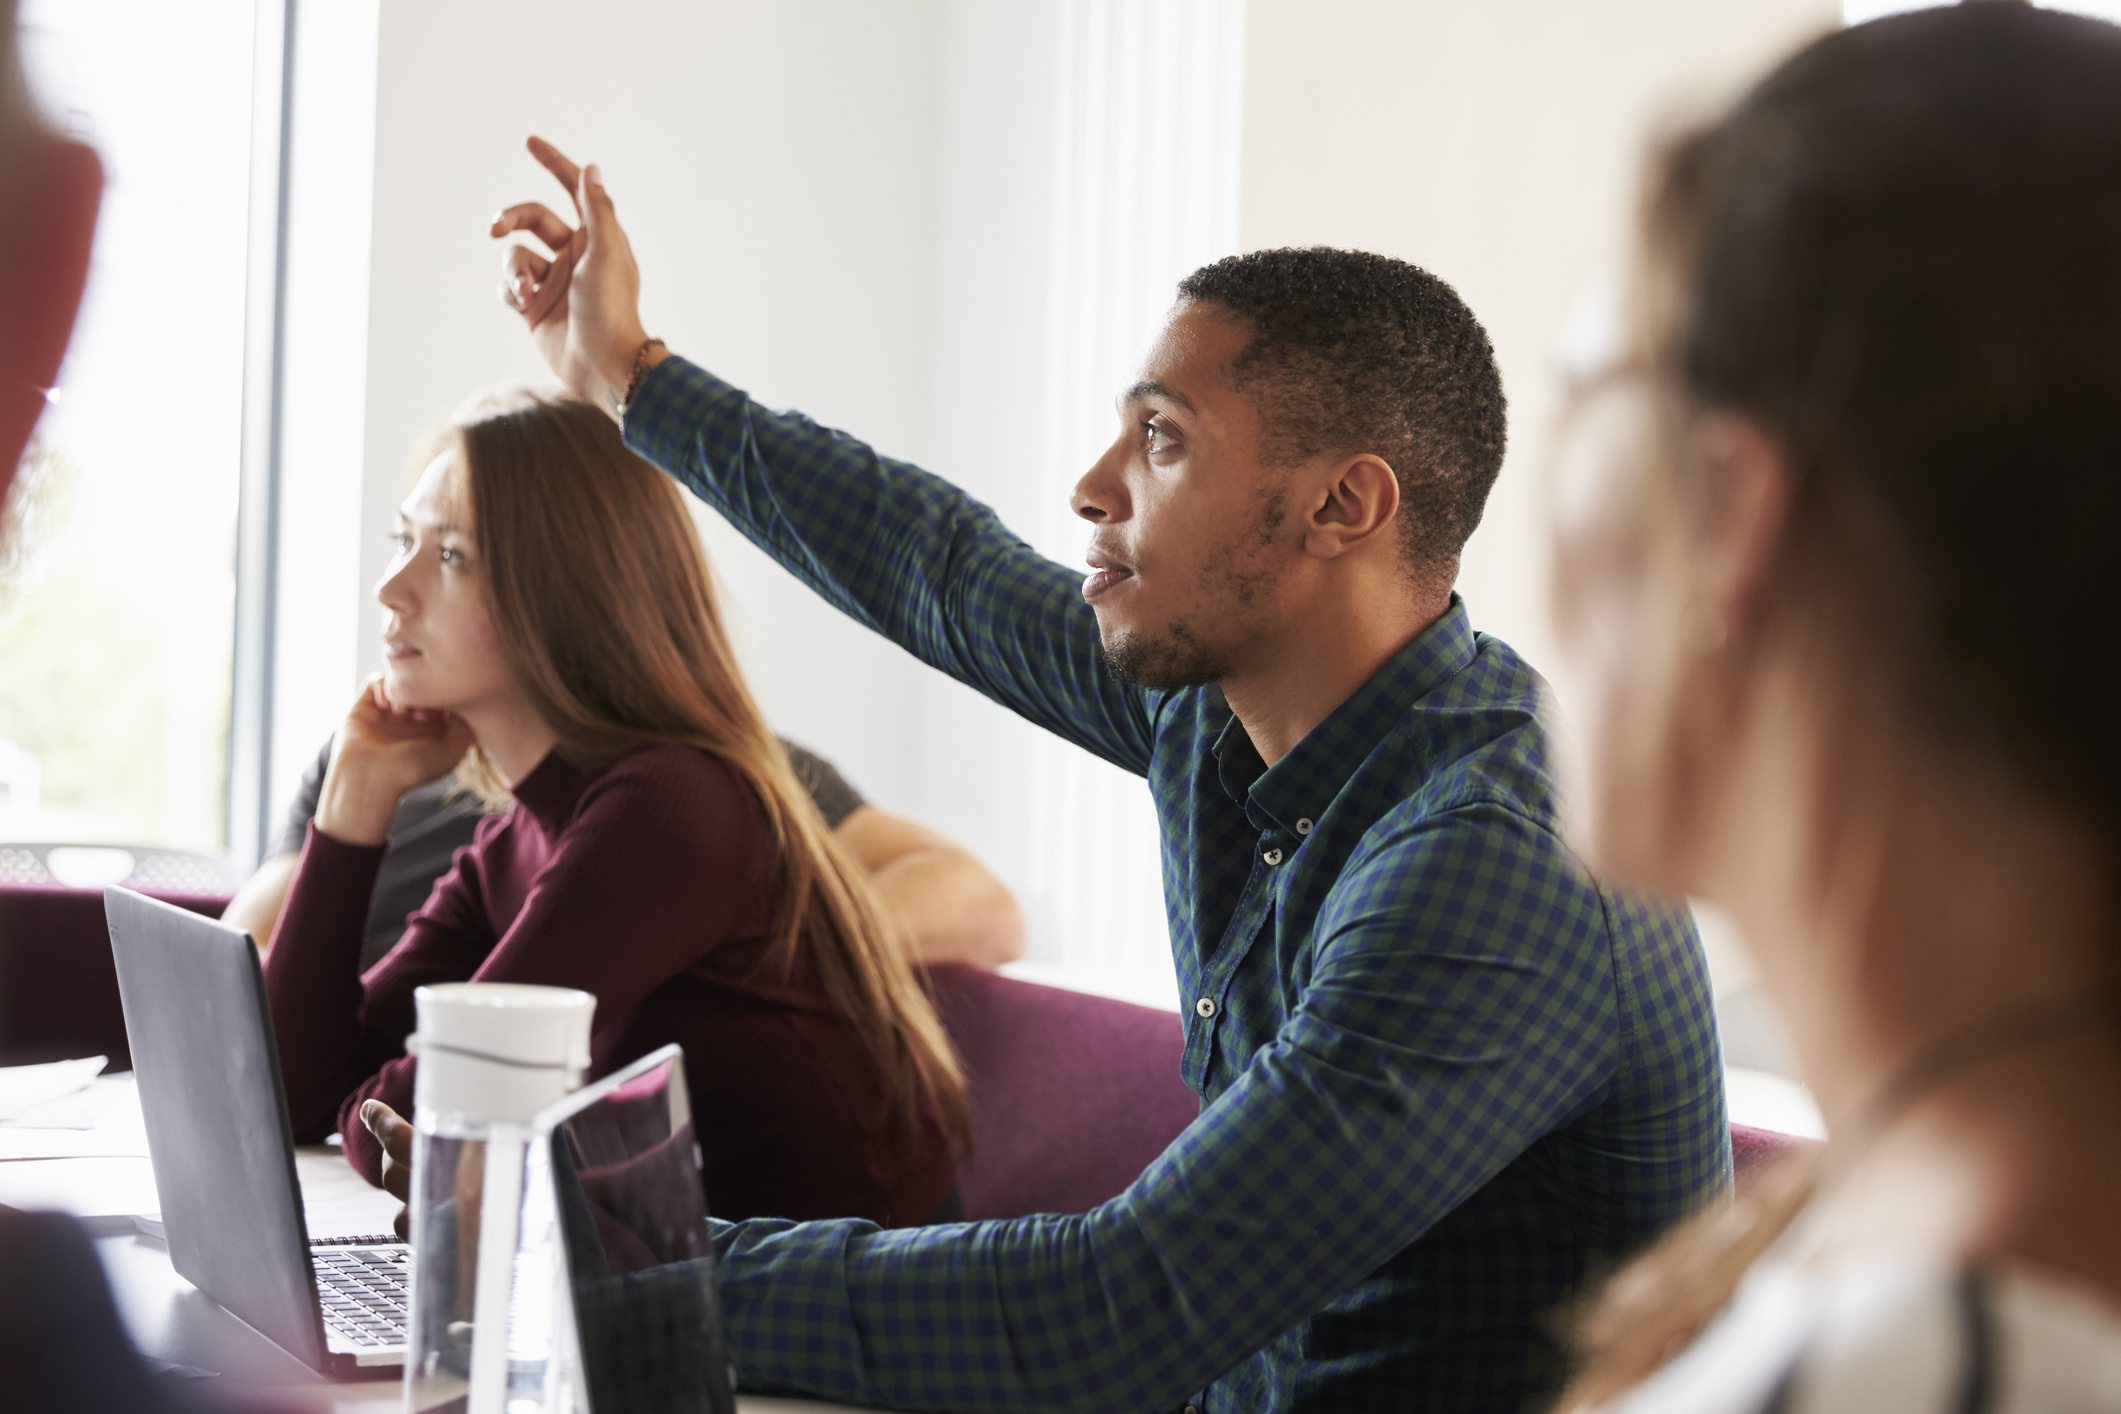 Student raising his hand in a university lecture hall